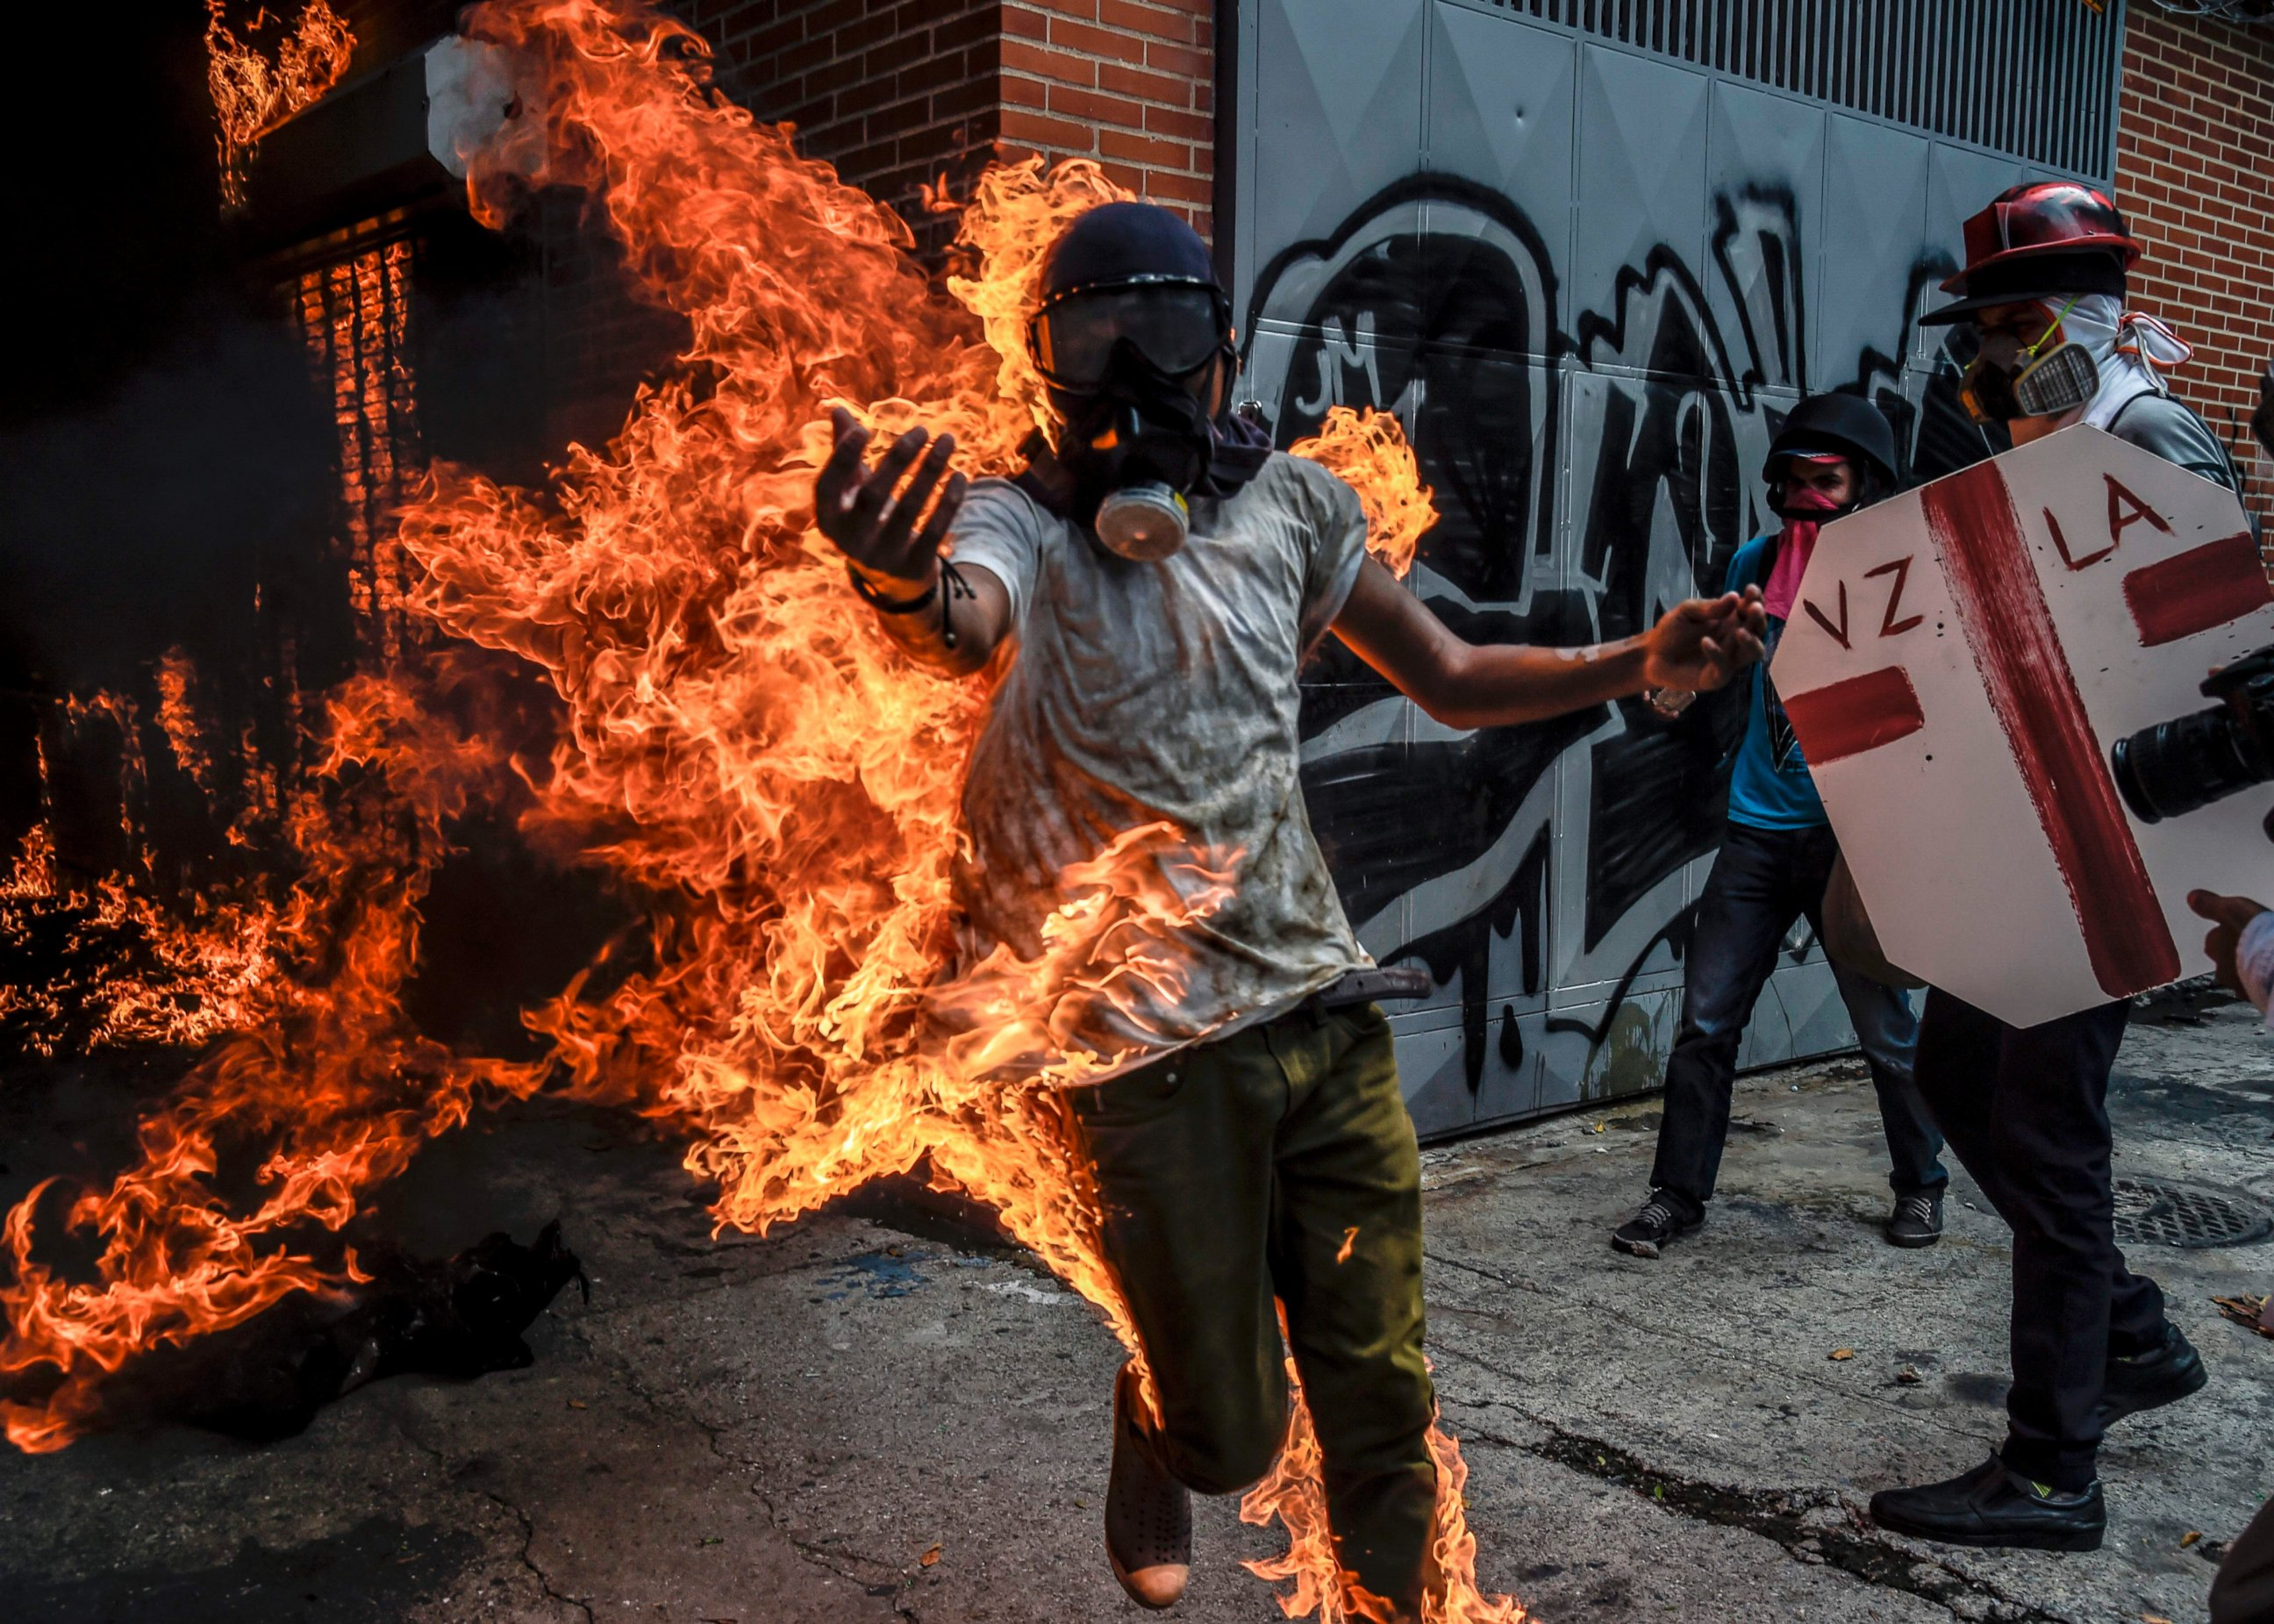 Image result for A demonstrator catches fire after the gas tank of a police motorbike exploded during clashes in a protest against Venezuelan President Nicolas Maduro, in Caracas, Venezuela, May 3, 2017.